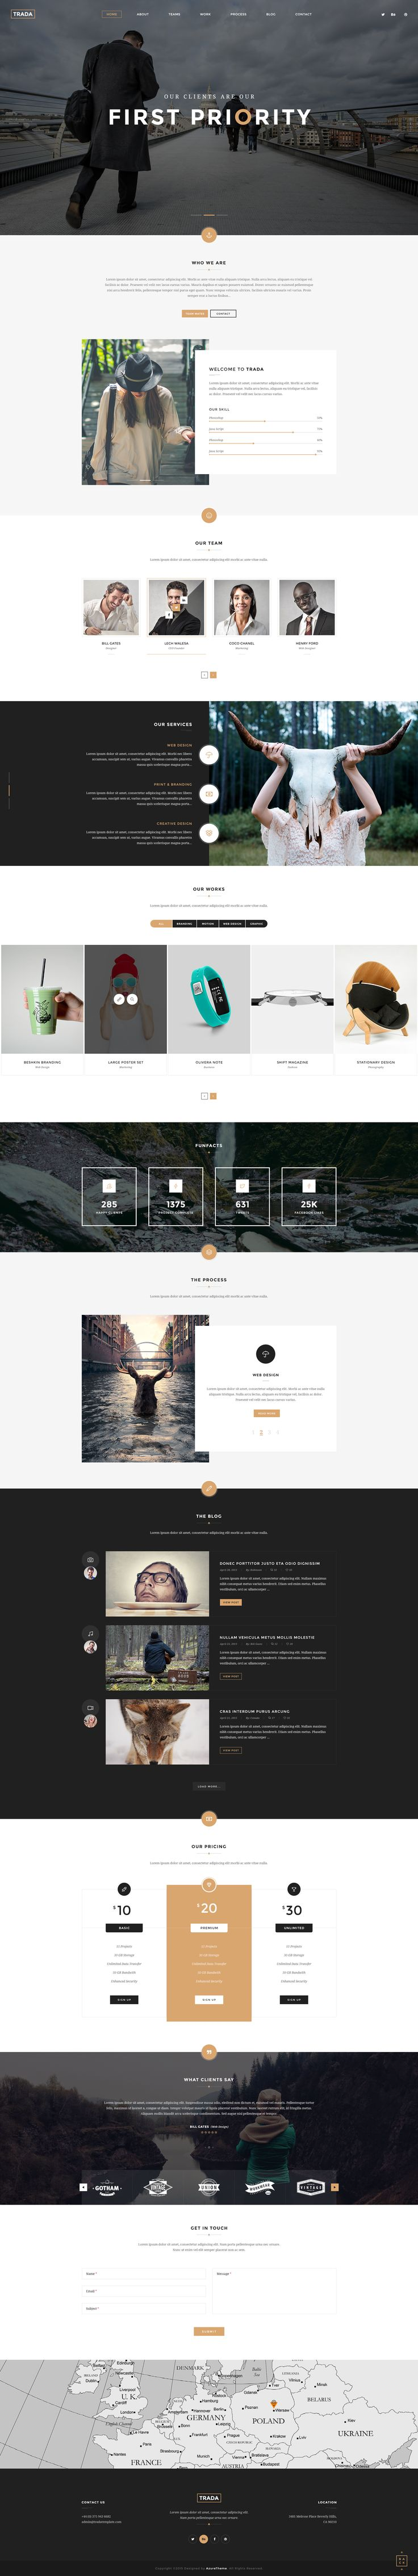 Trada - Creative Onepage PSD Template • Download ↓ https://themeforest.net/item/trada-creative-onepage-psd-template/12049758?ref=pxcr